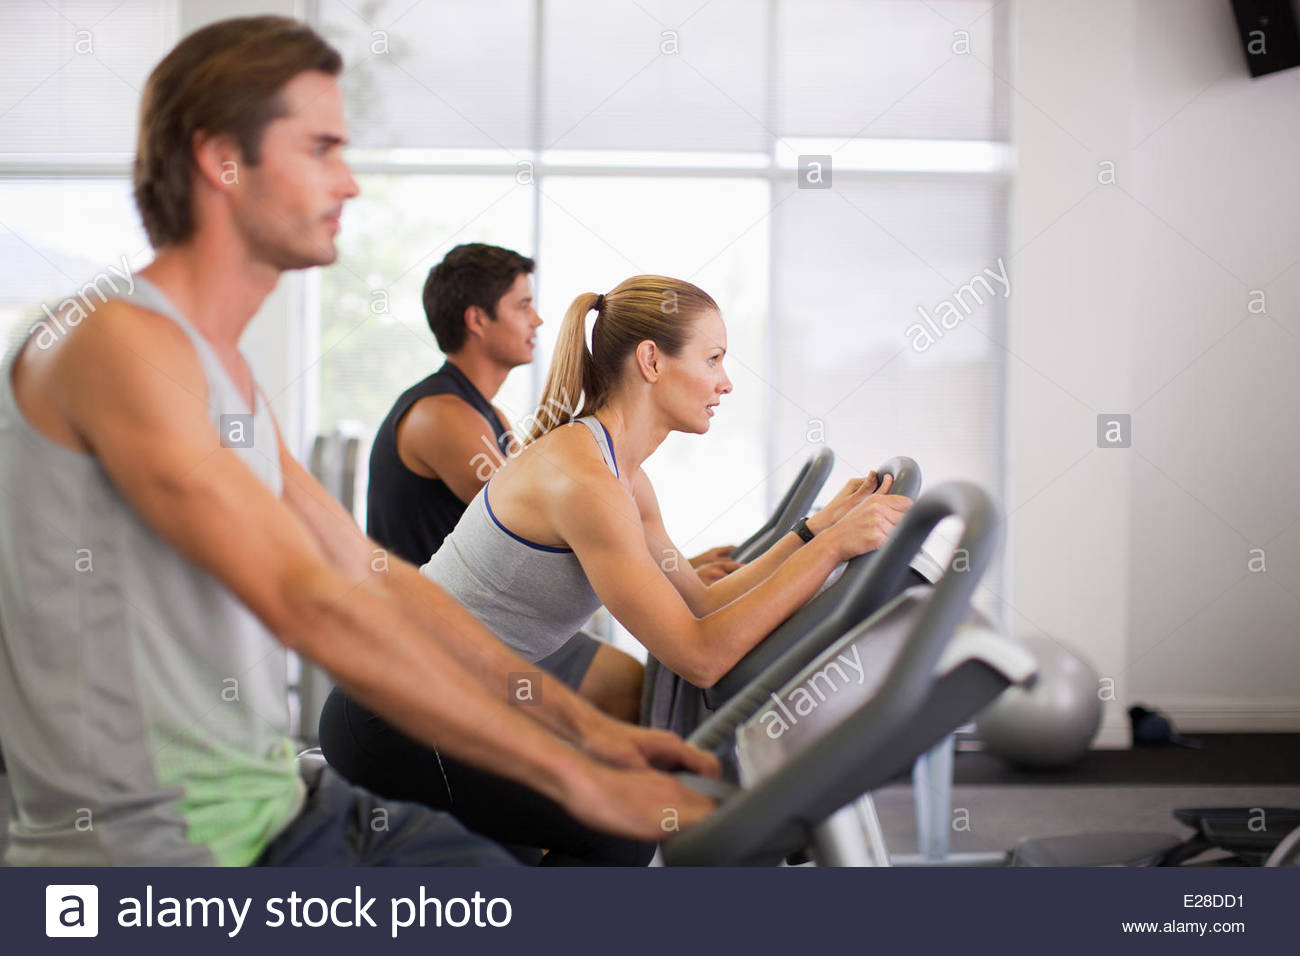 Three people on exercise bikes in gymnasium - Stock Image